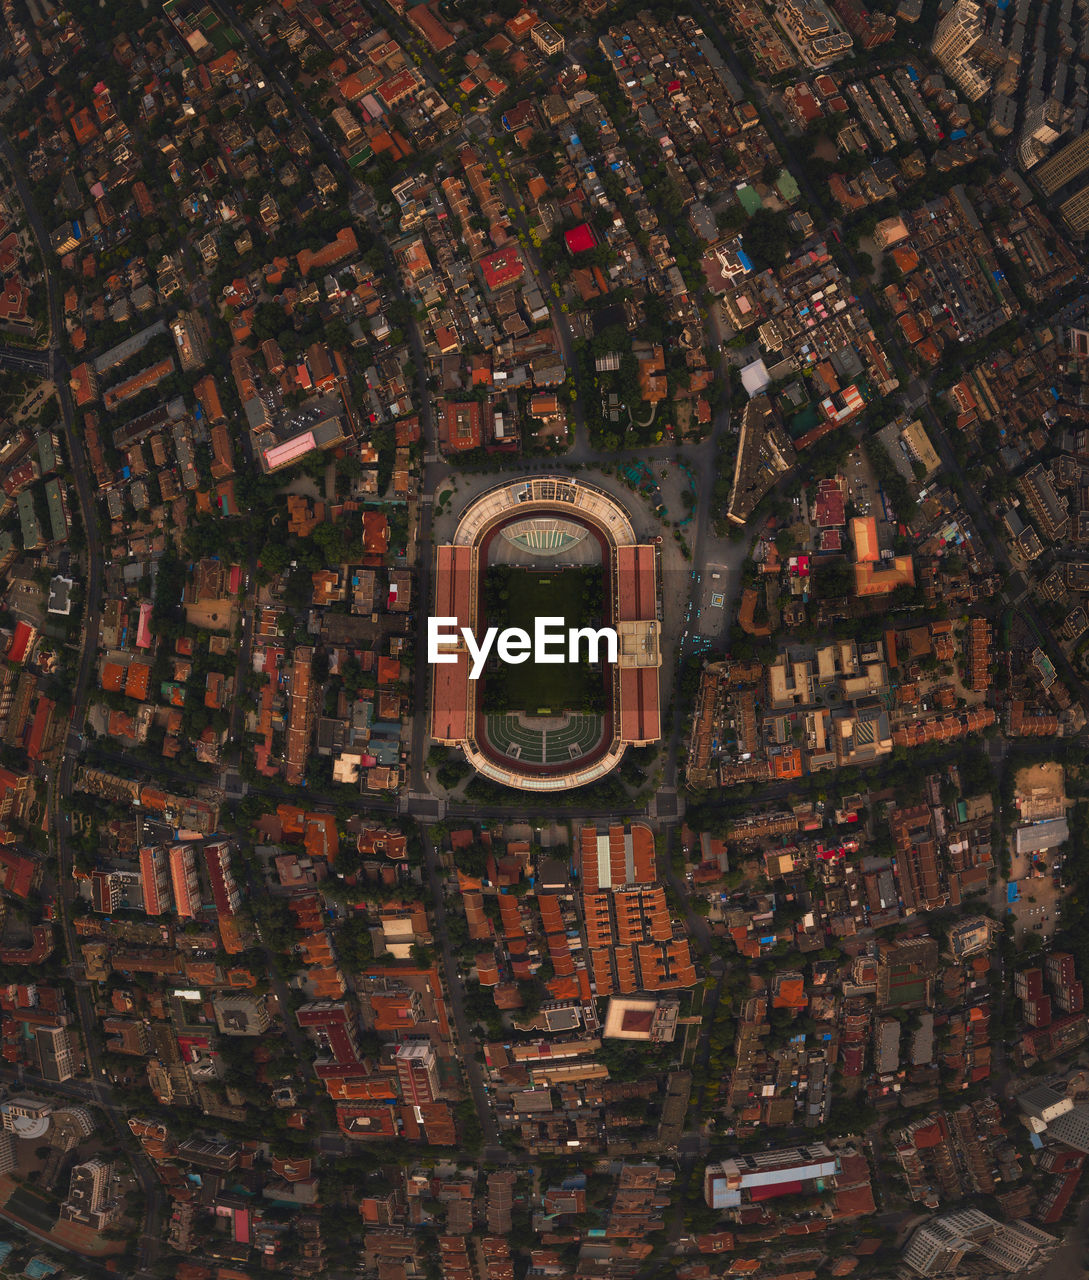 Aerial fish-eye lens shot of cityscape